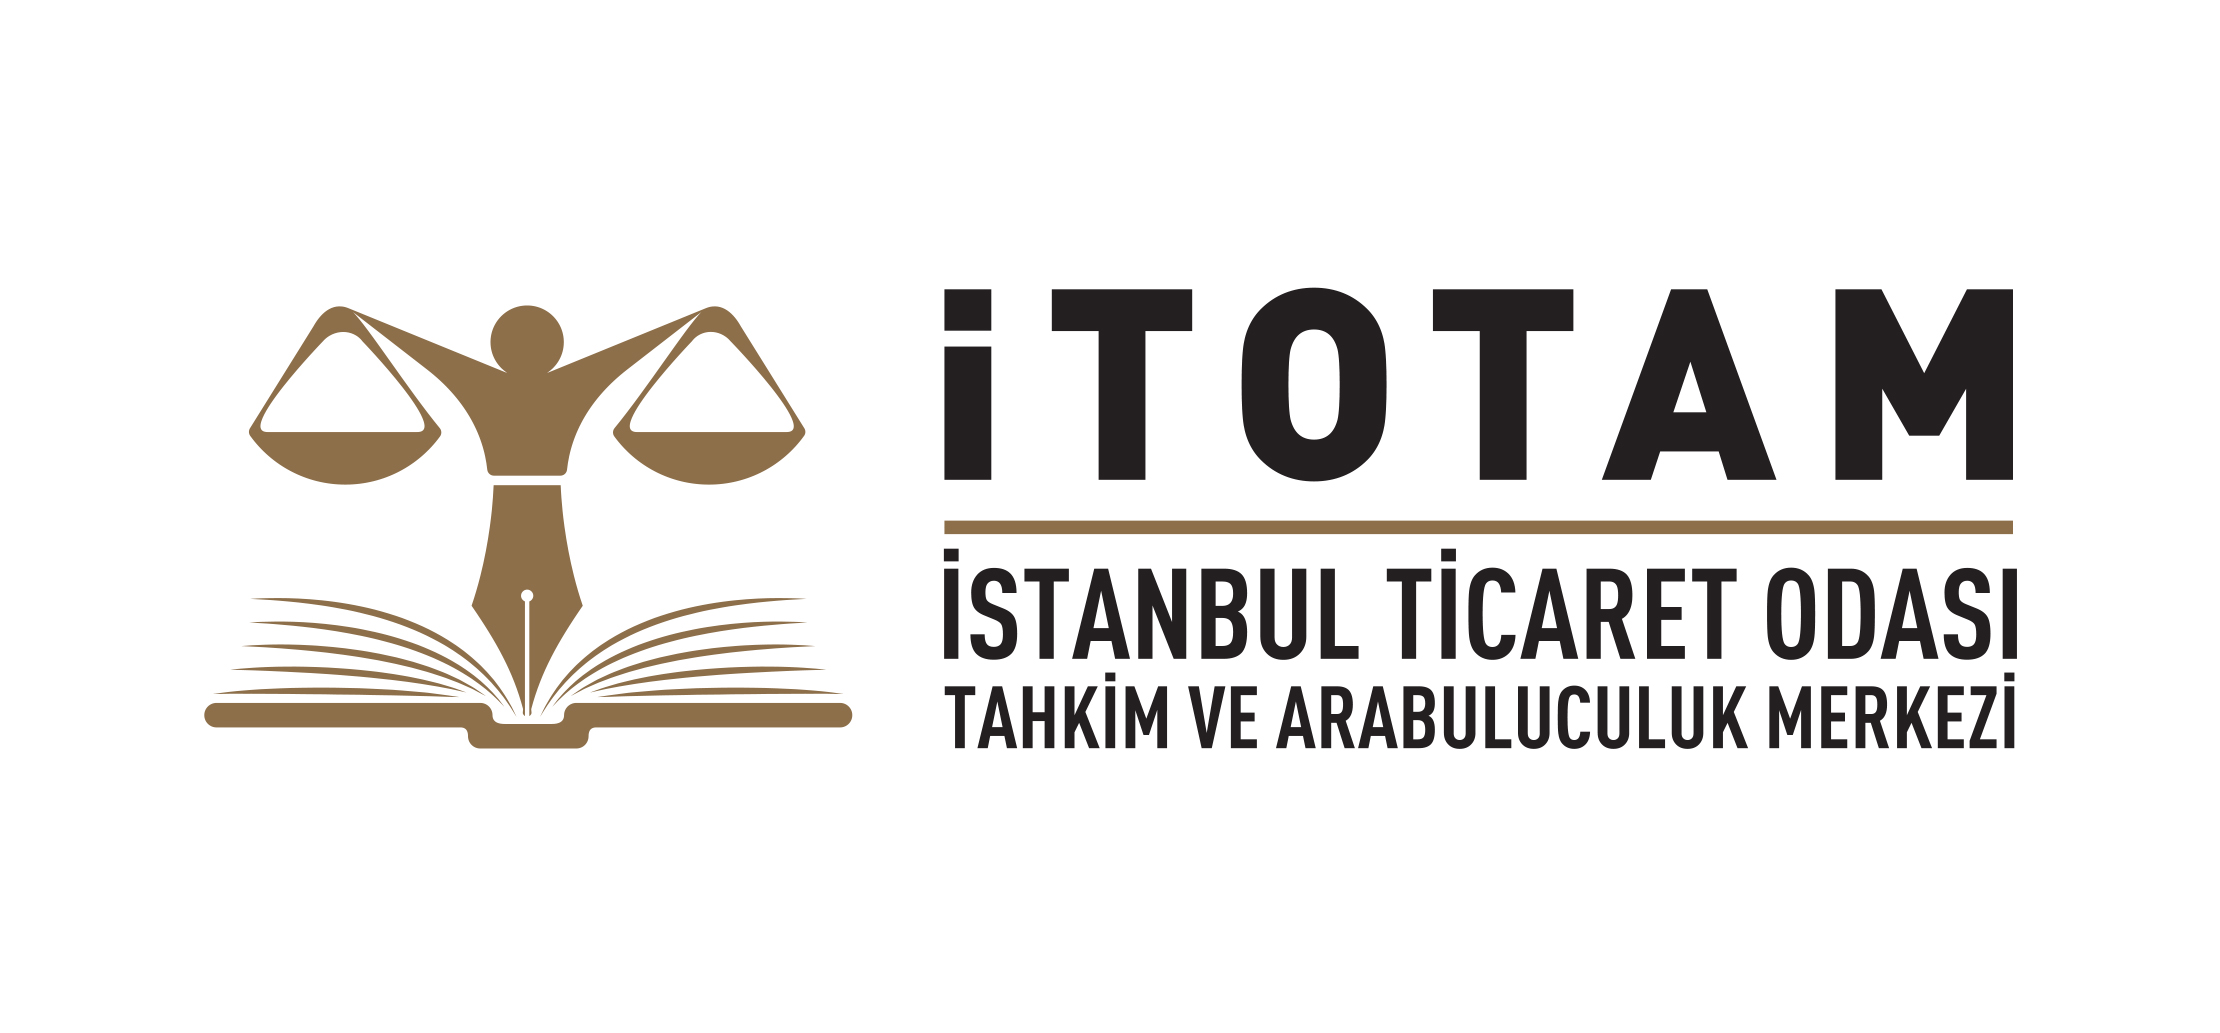 ISTANBUL CHAMBER OF COMMERCE ARBITRATION AND MEDIATION CENTER